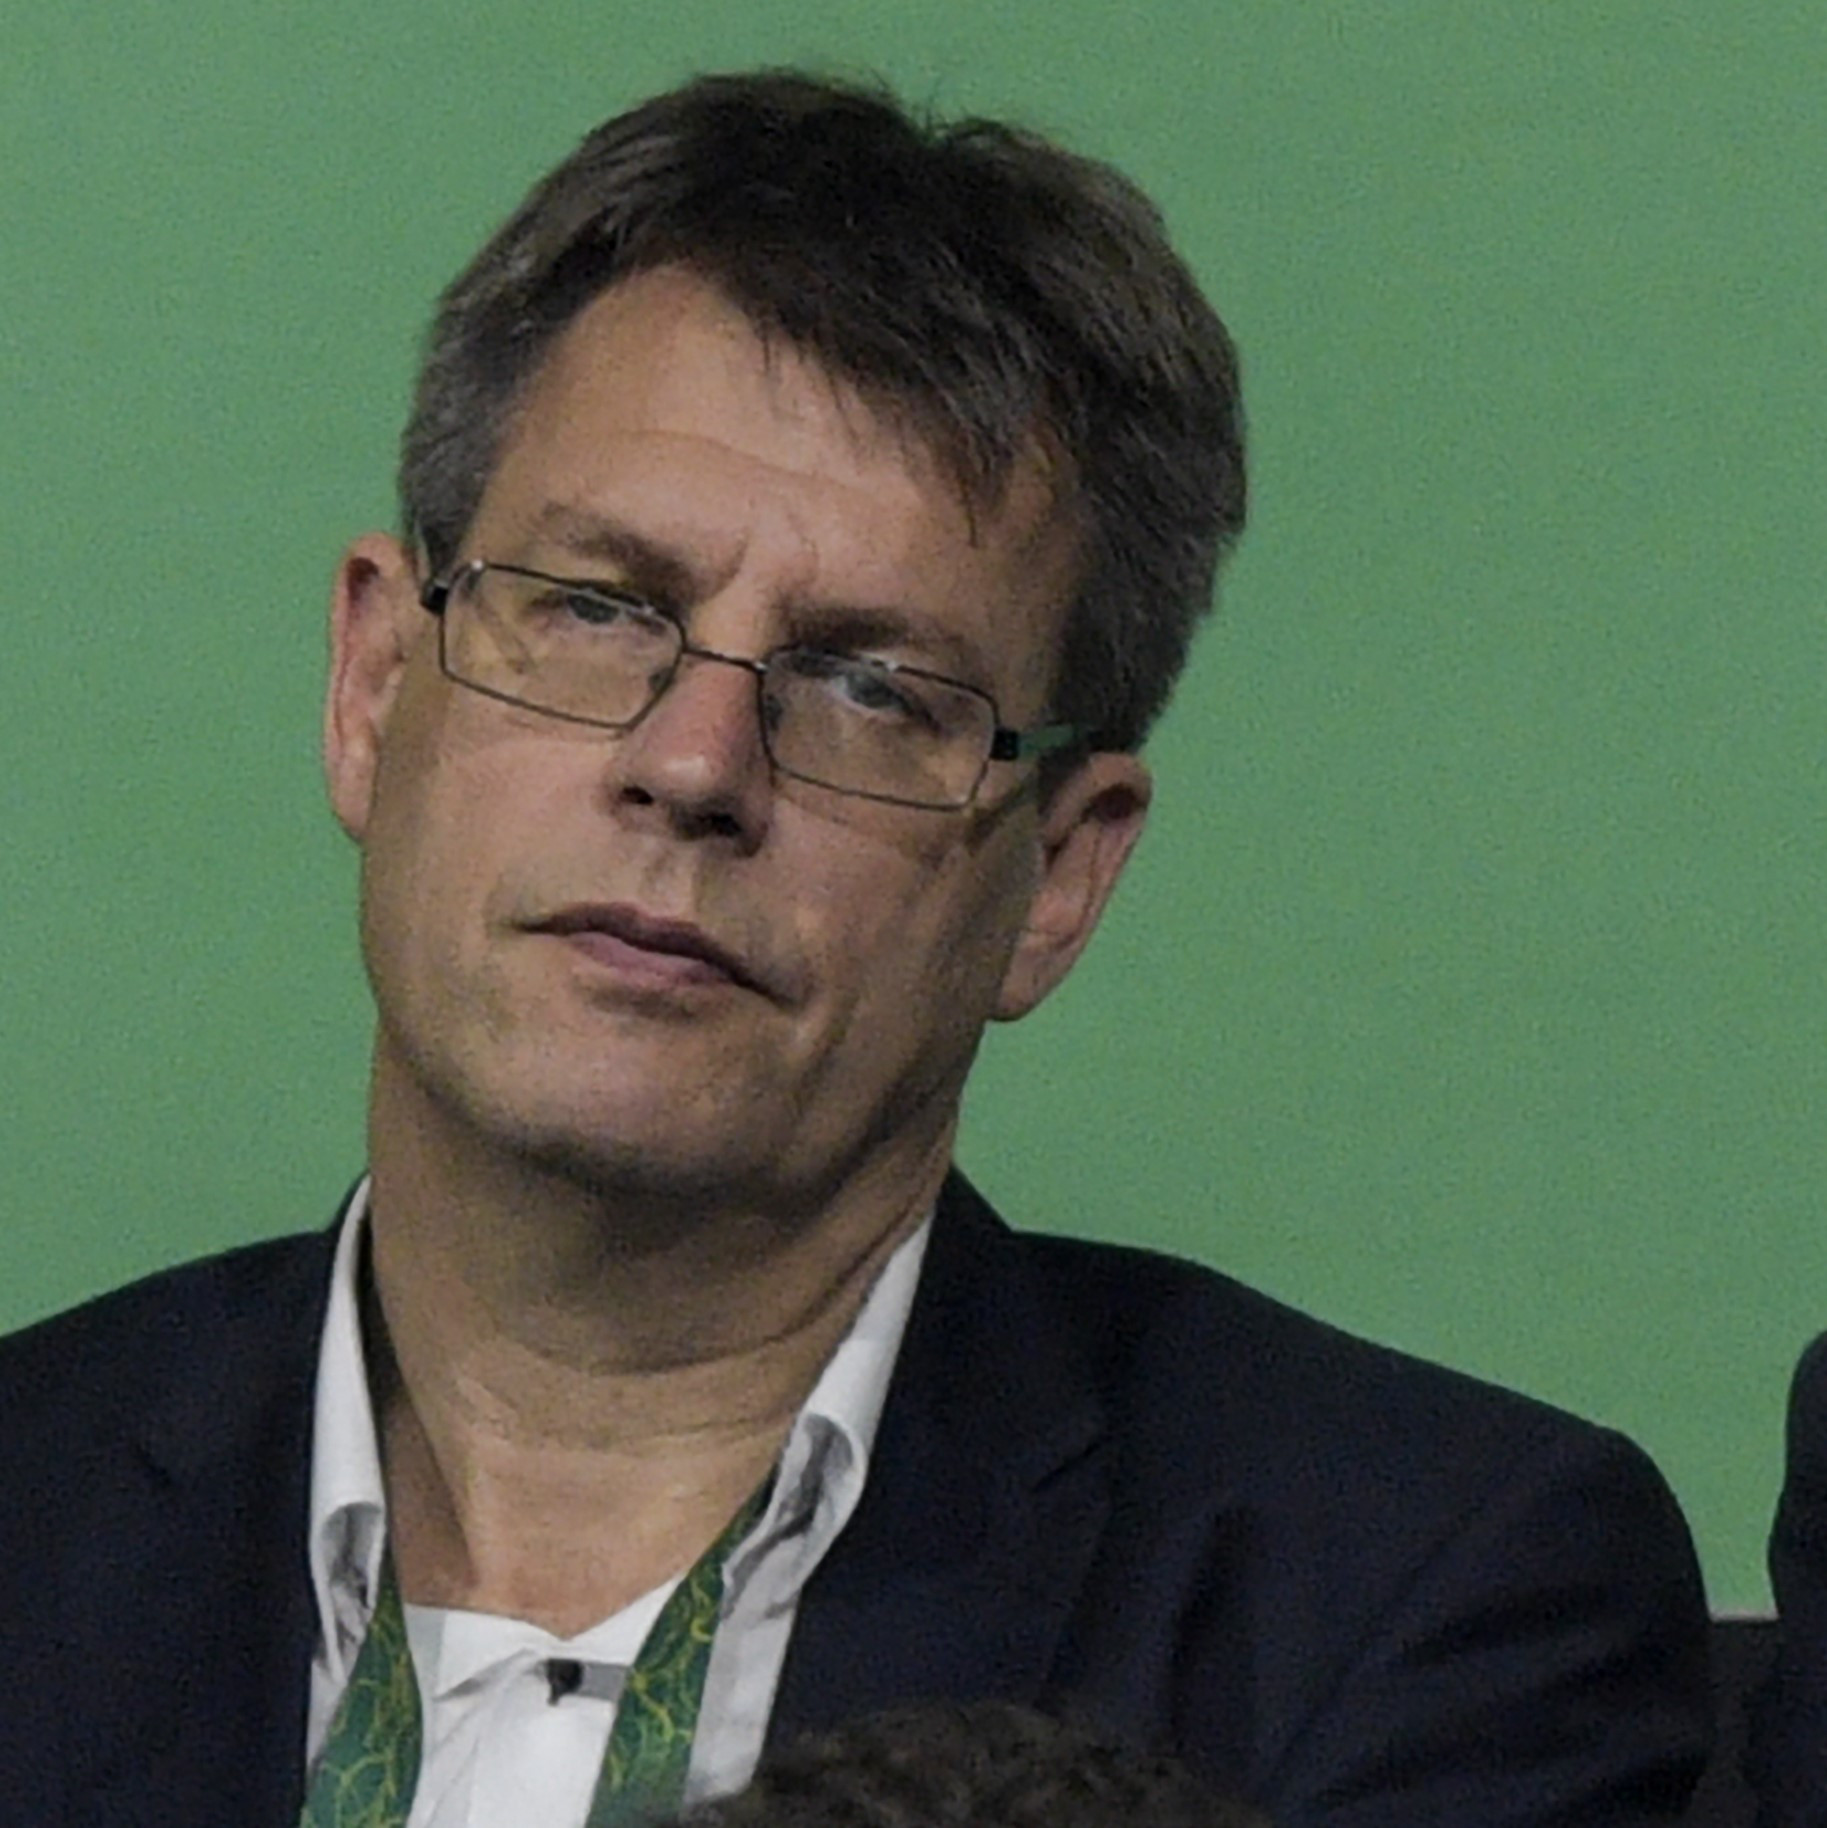 ITTF President Weikert will not stand for re-election